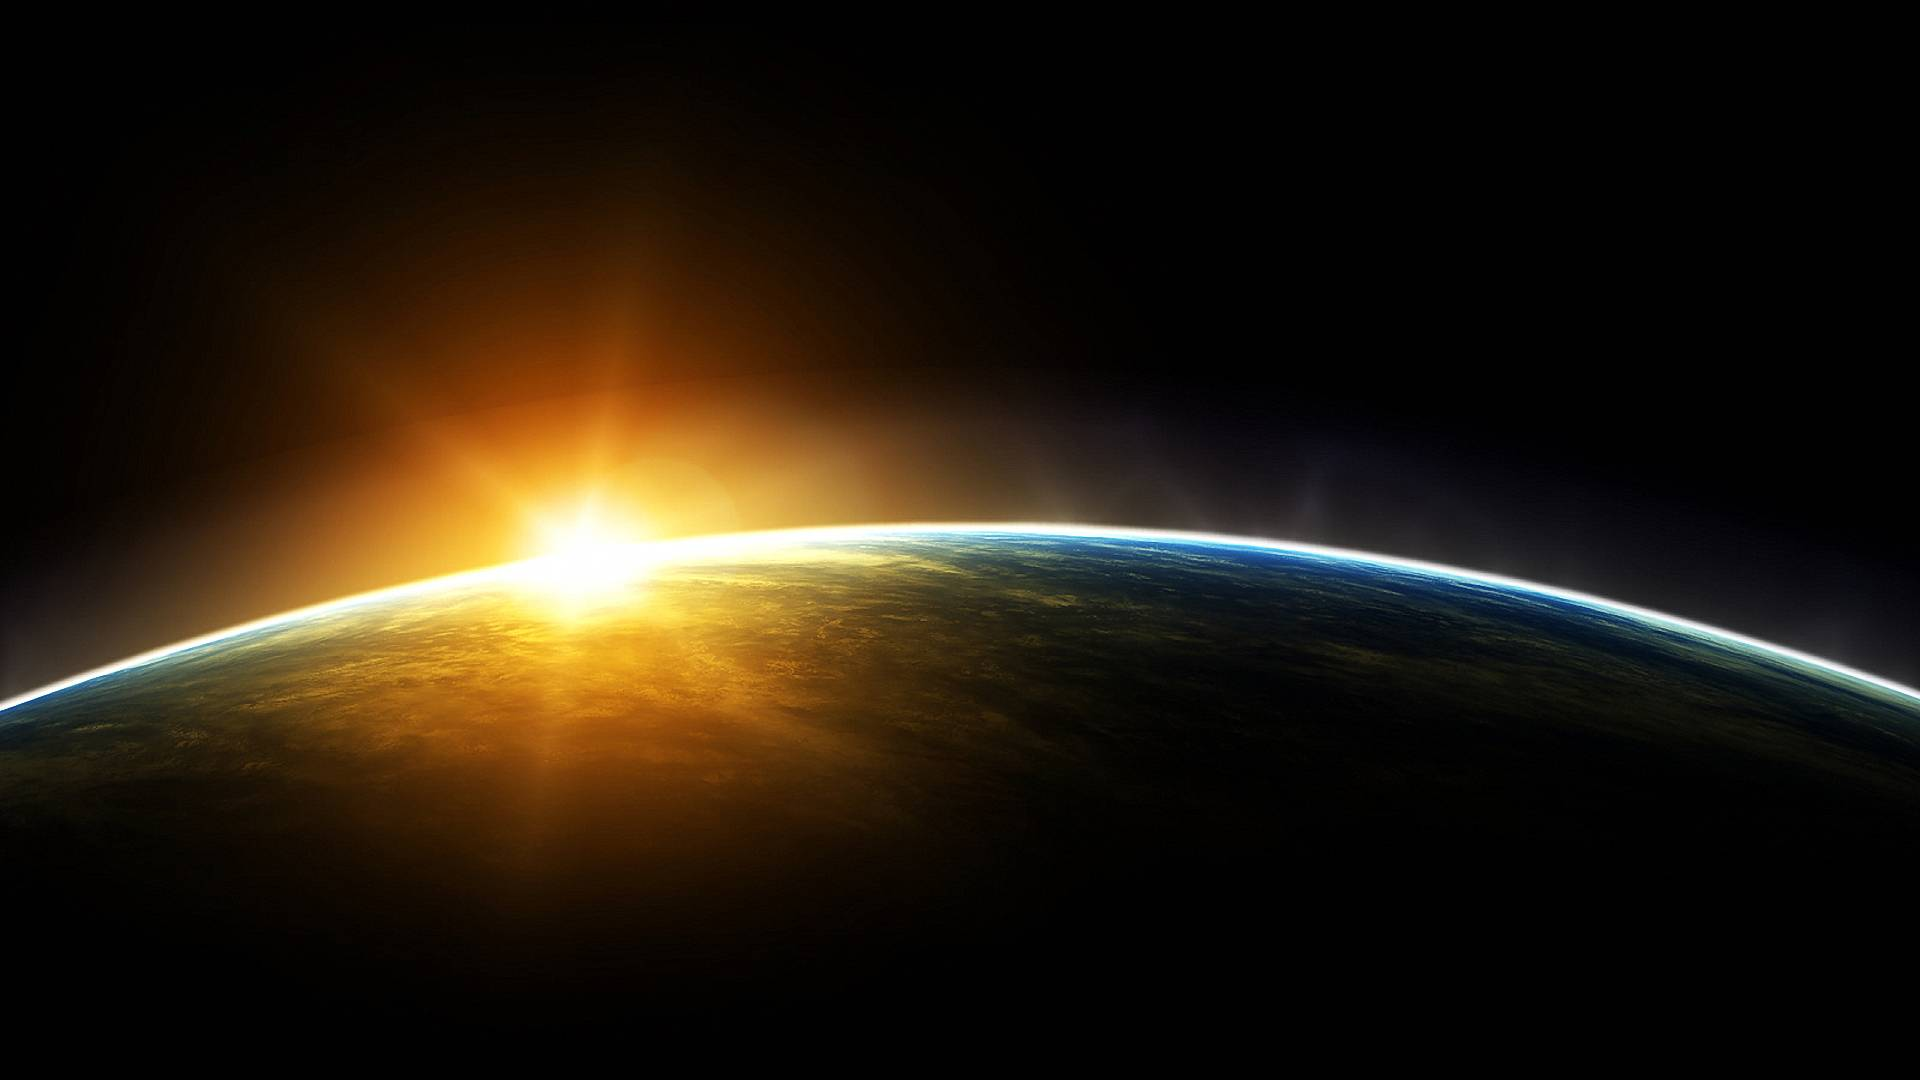 earth desktop backgrounds hd